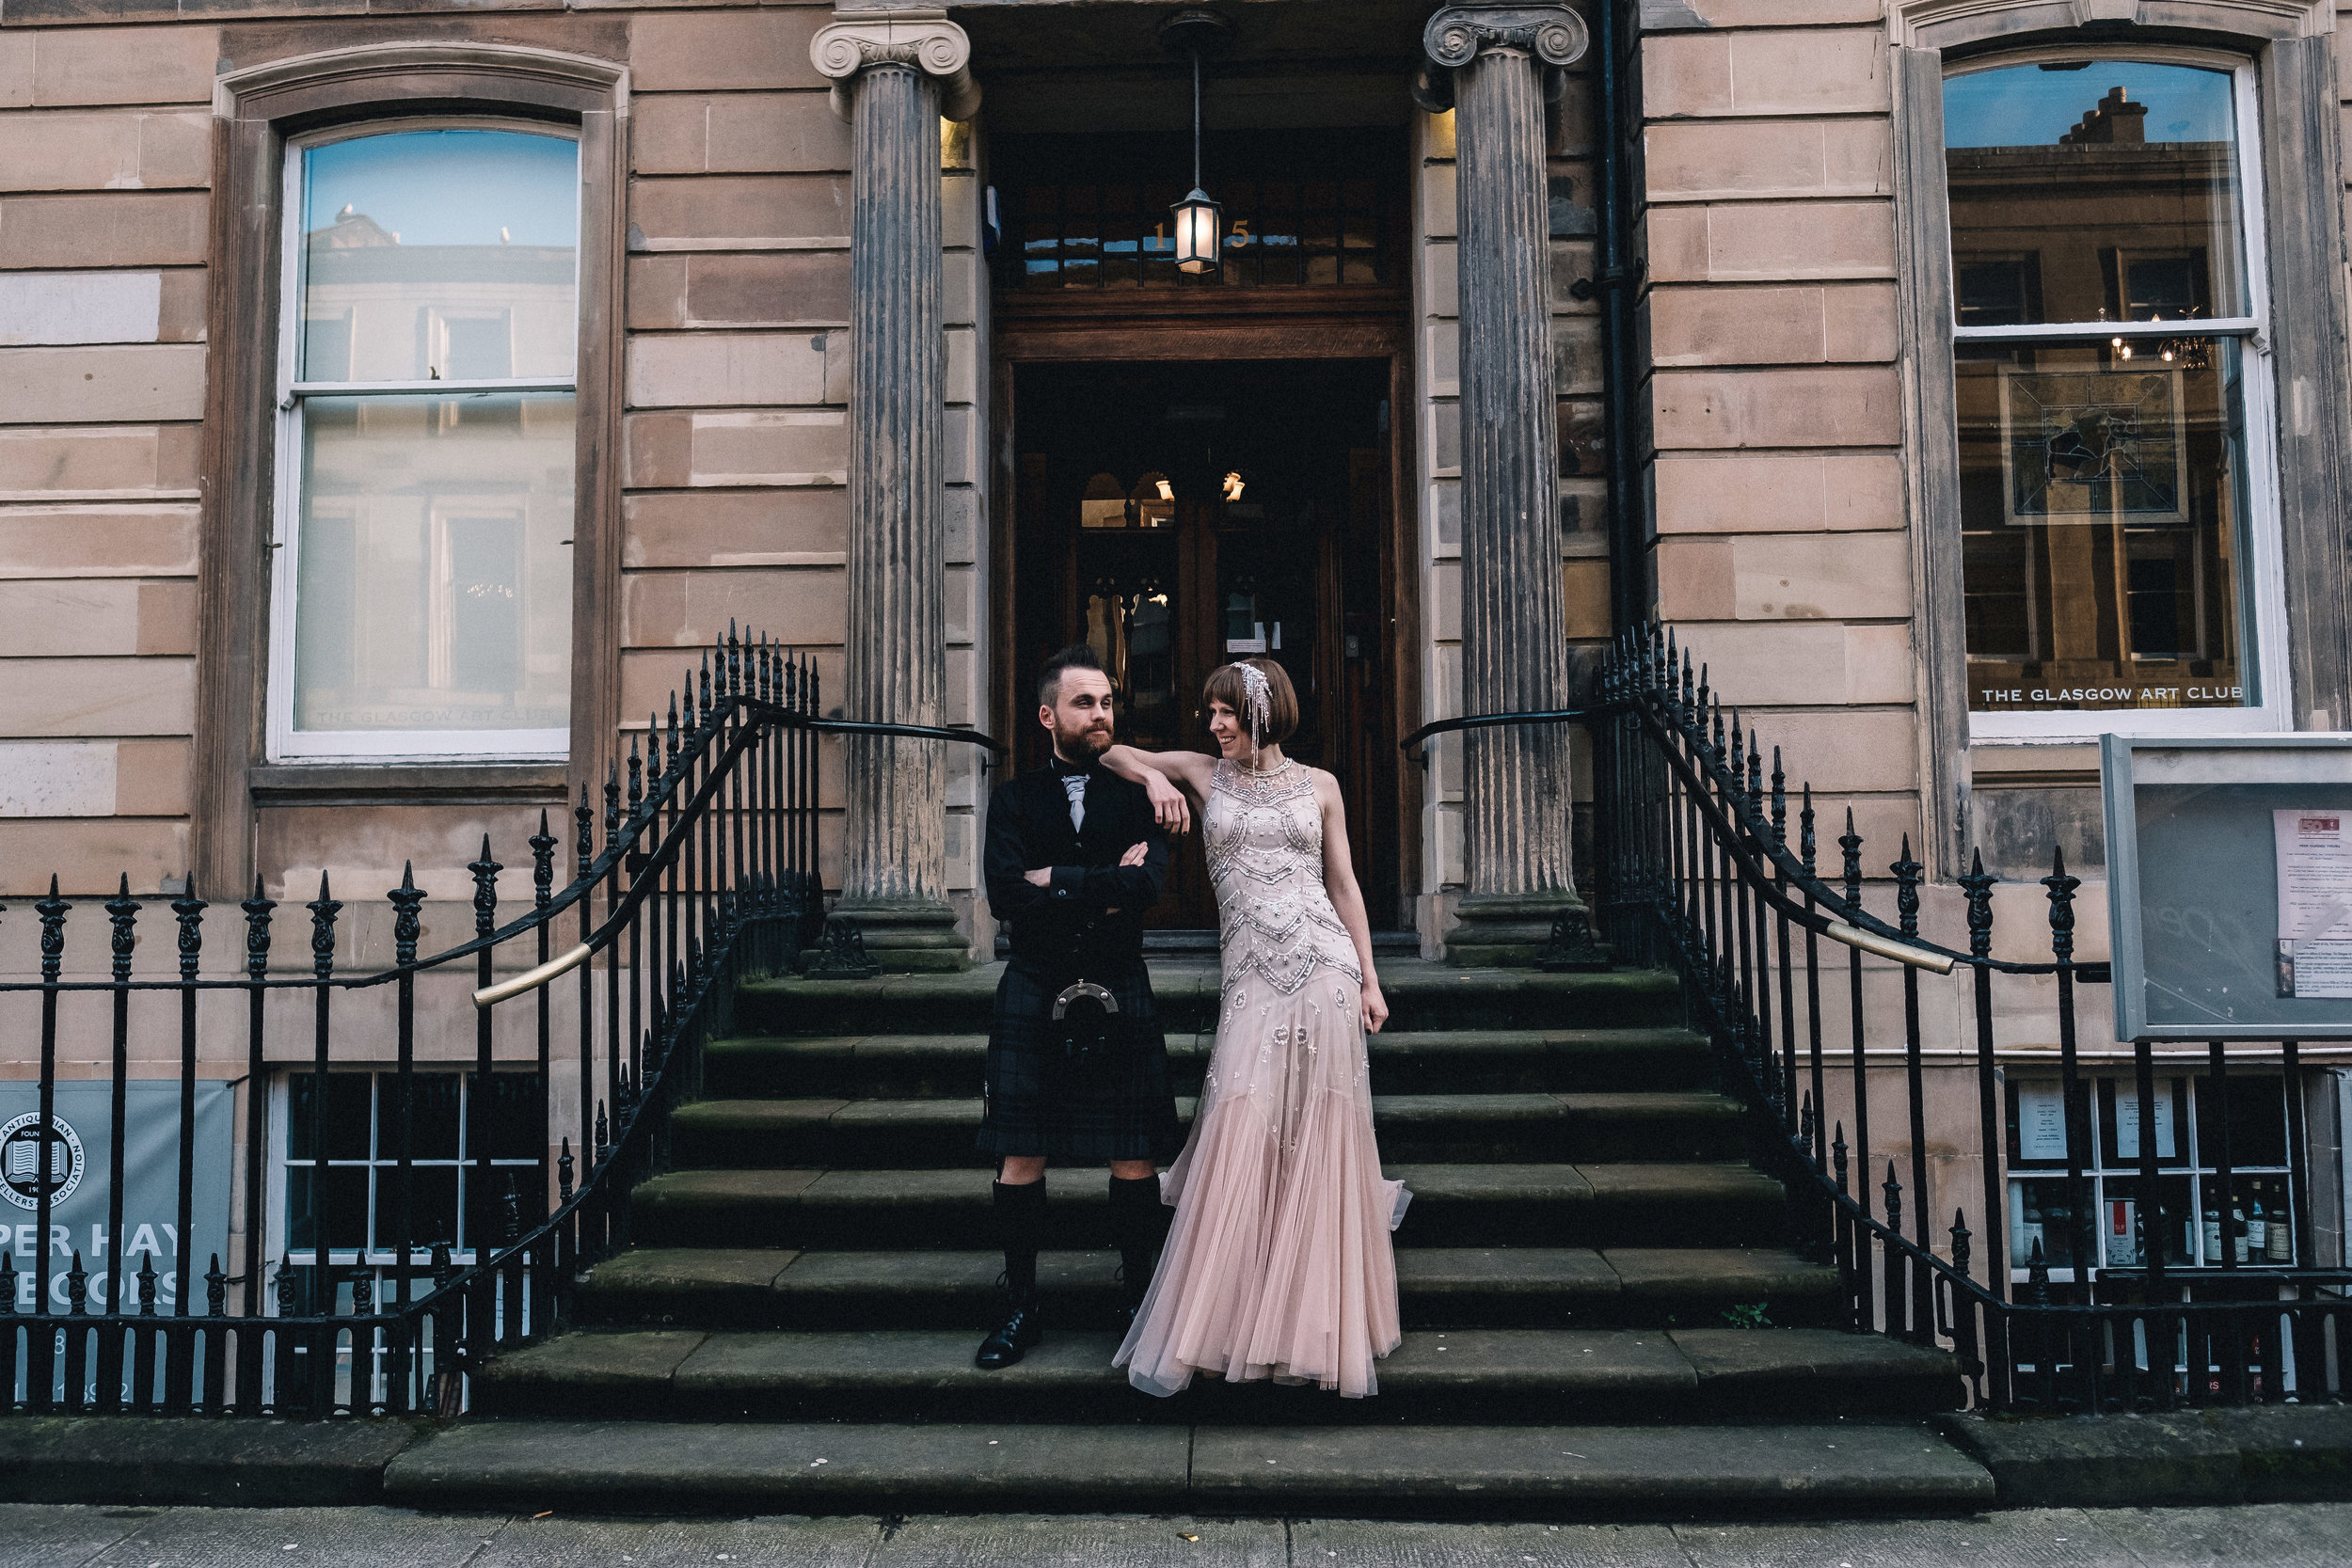 Couple stand on stairs of The Glasgow Art Club